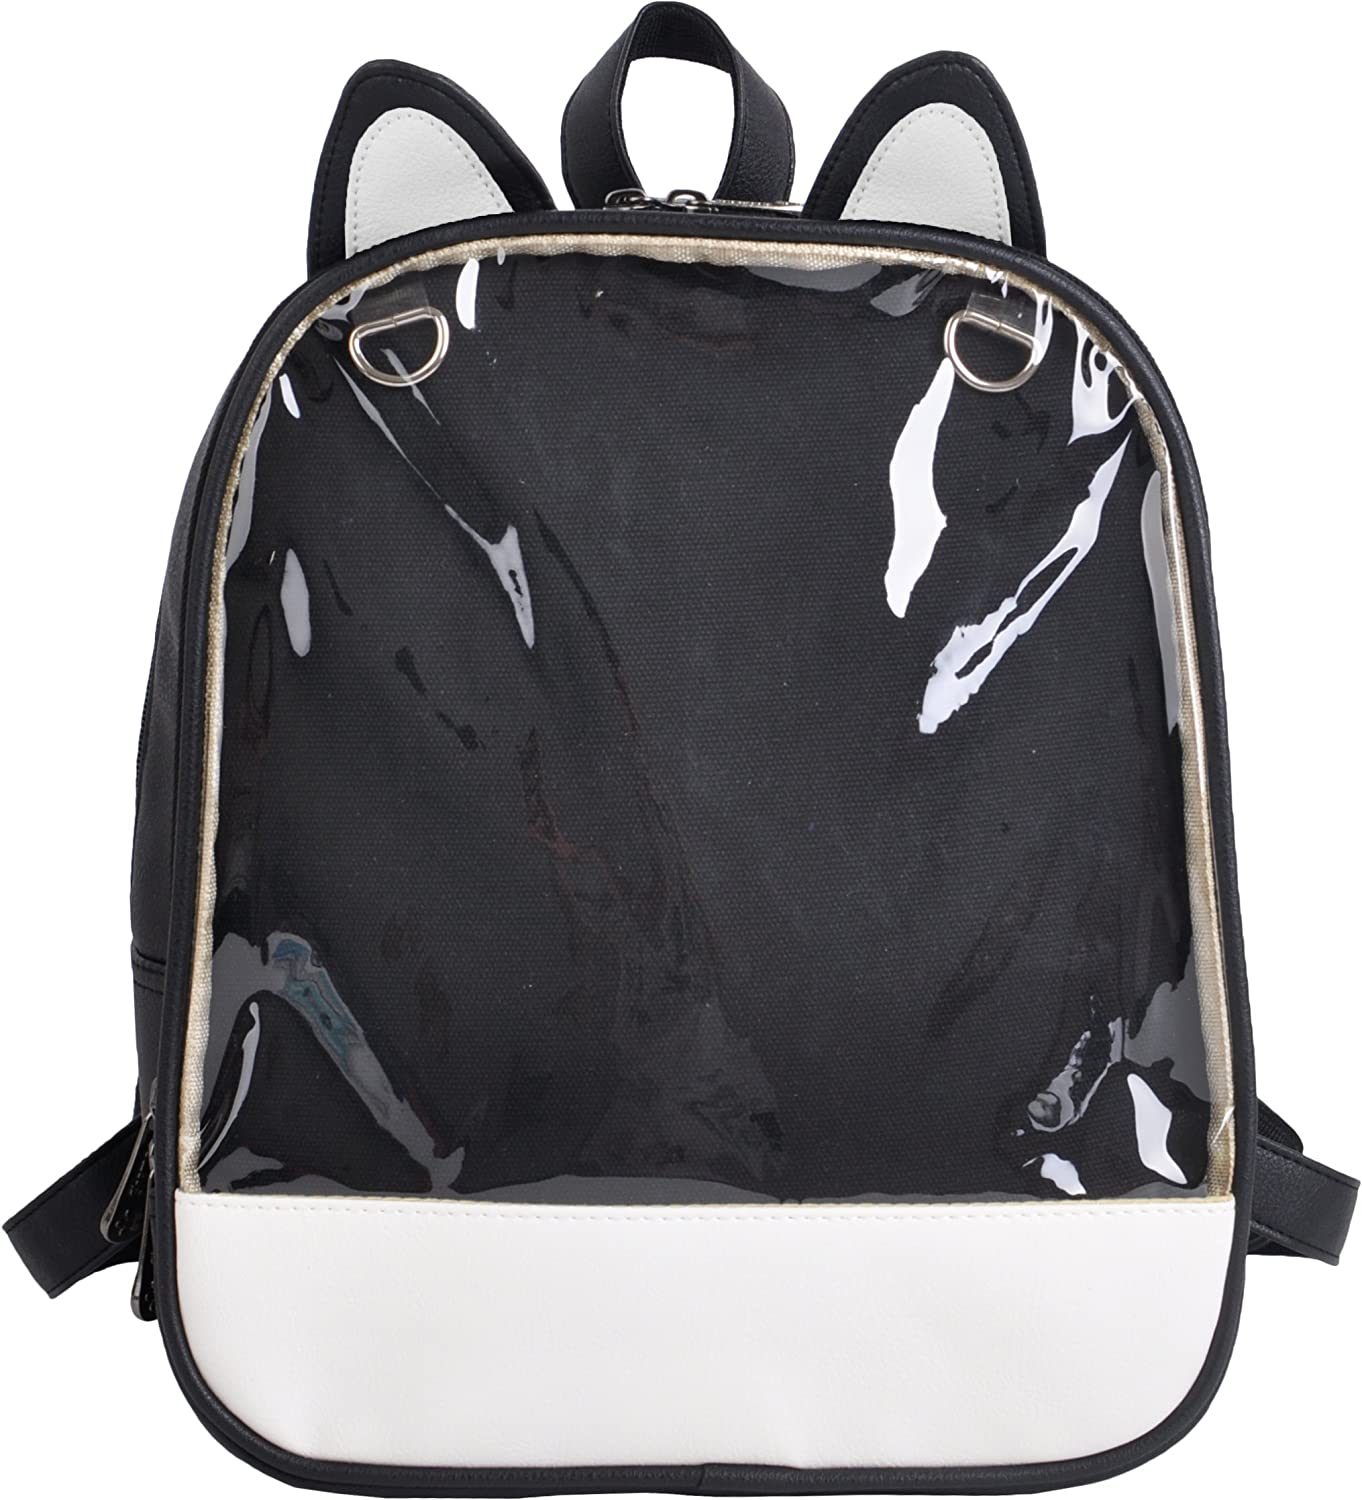 LunaCatz 'Ita-Bag' Backpack with Cat Ears and Transparent Front Pocket